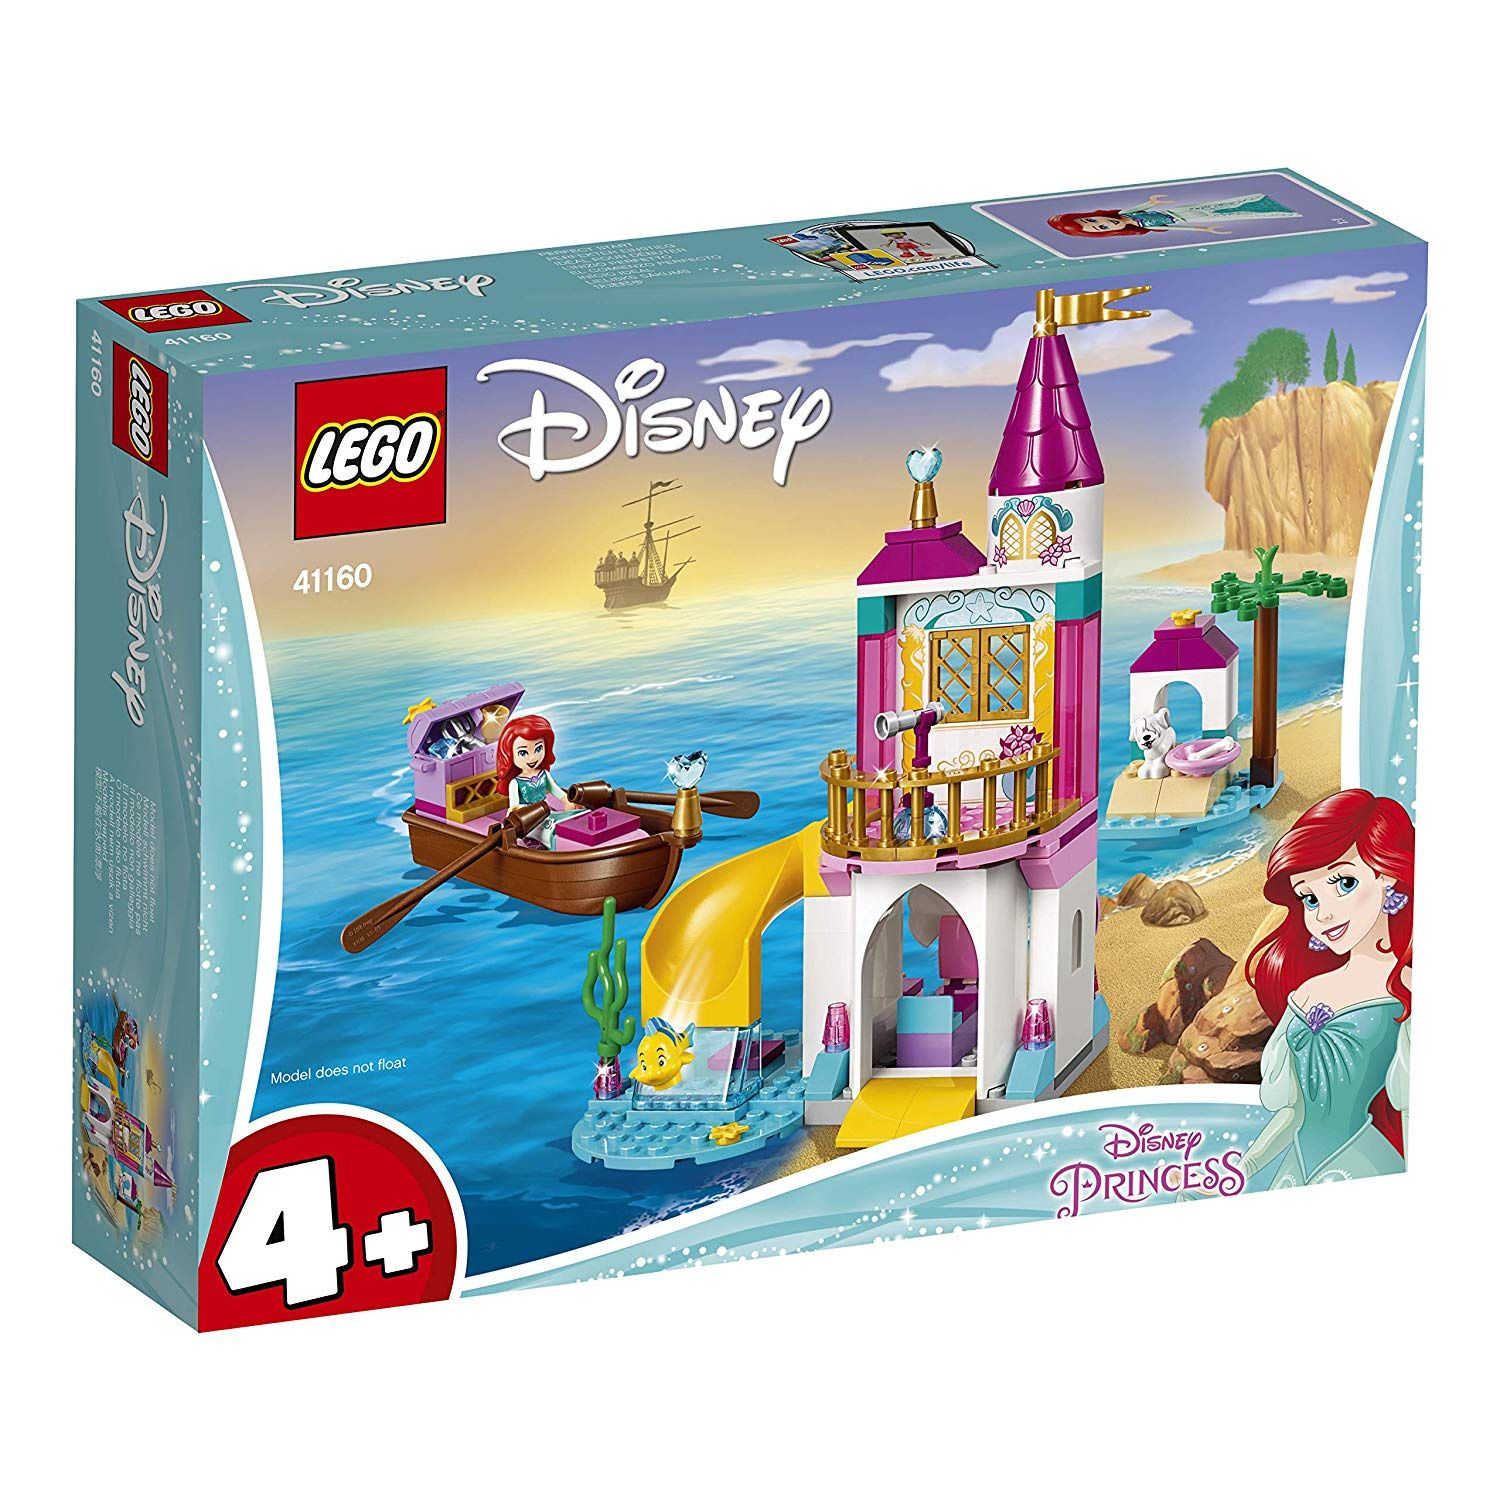 LEGO 41160 Disney Princess Ariel's Seaside Castle Set with Mini Doll and  Boat Toy, The Little Mermaid Toys